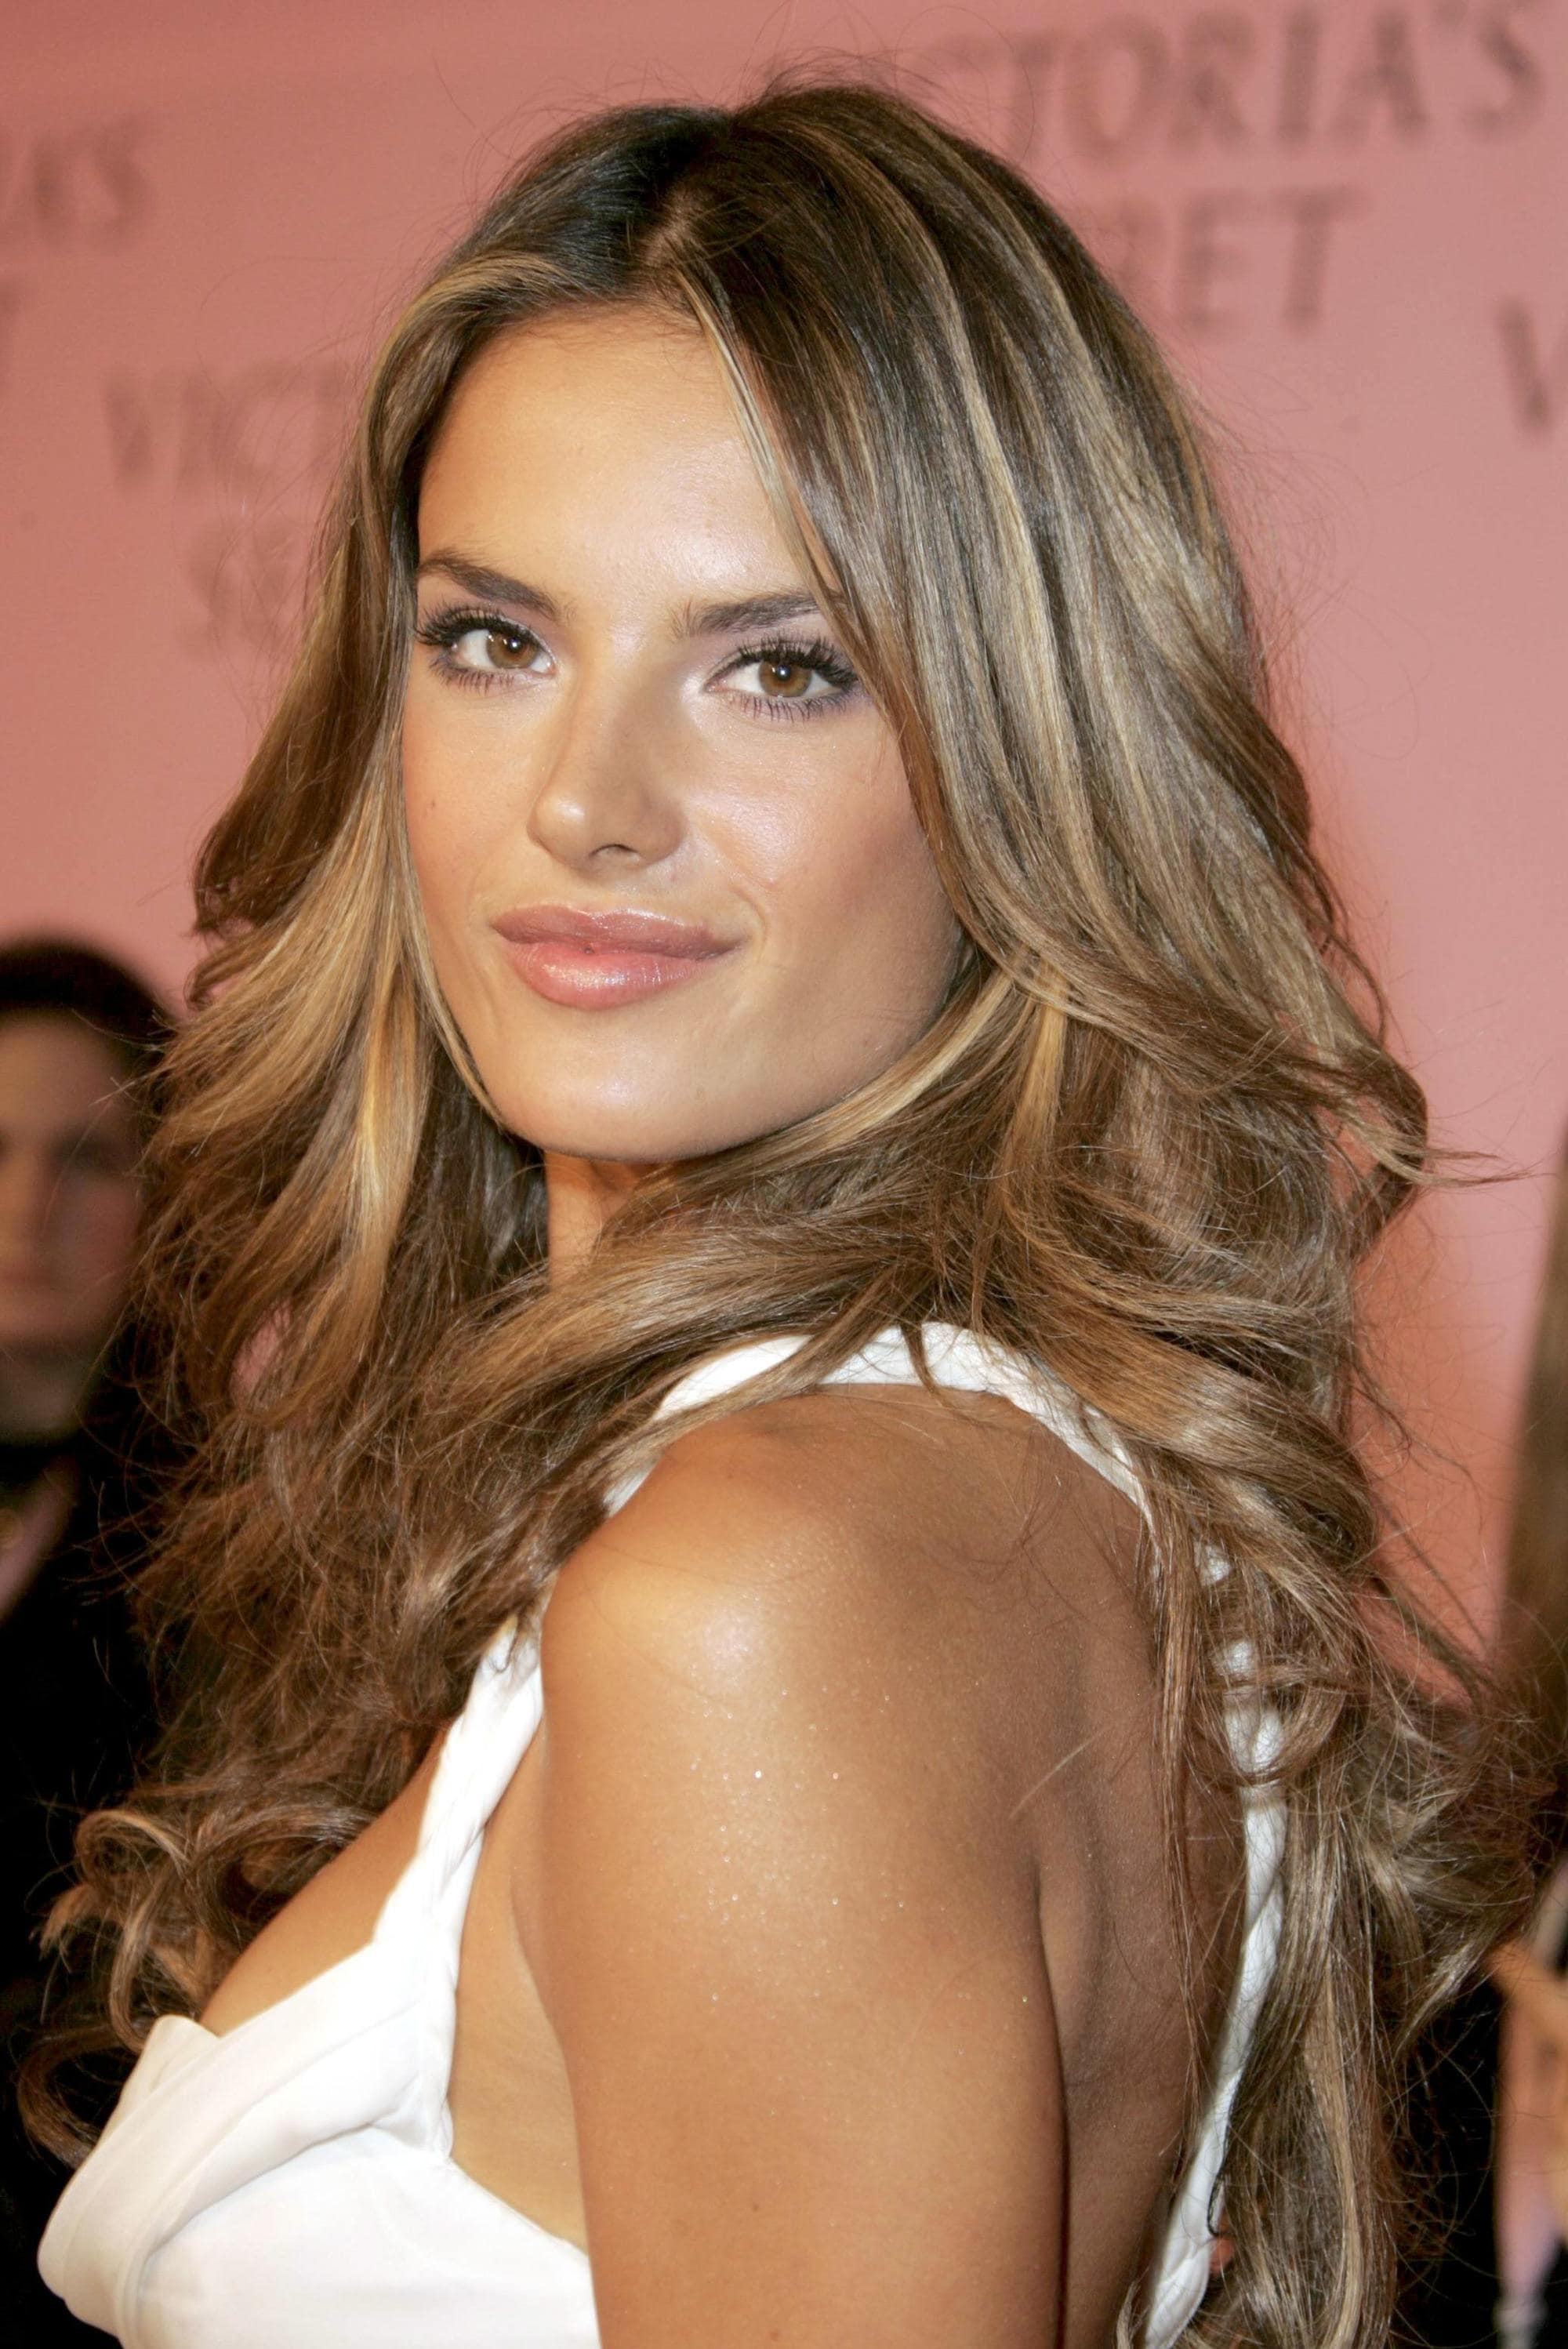 Brown hair with blonde highlights: Alessandra Ambrosio with her brunette highlighted hair styled in classic voluminous Victoria's Secret waves